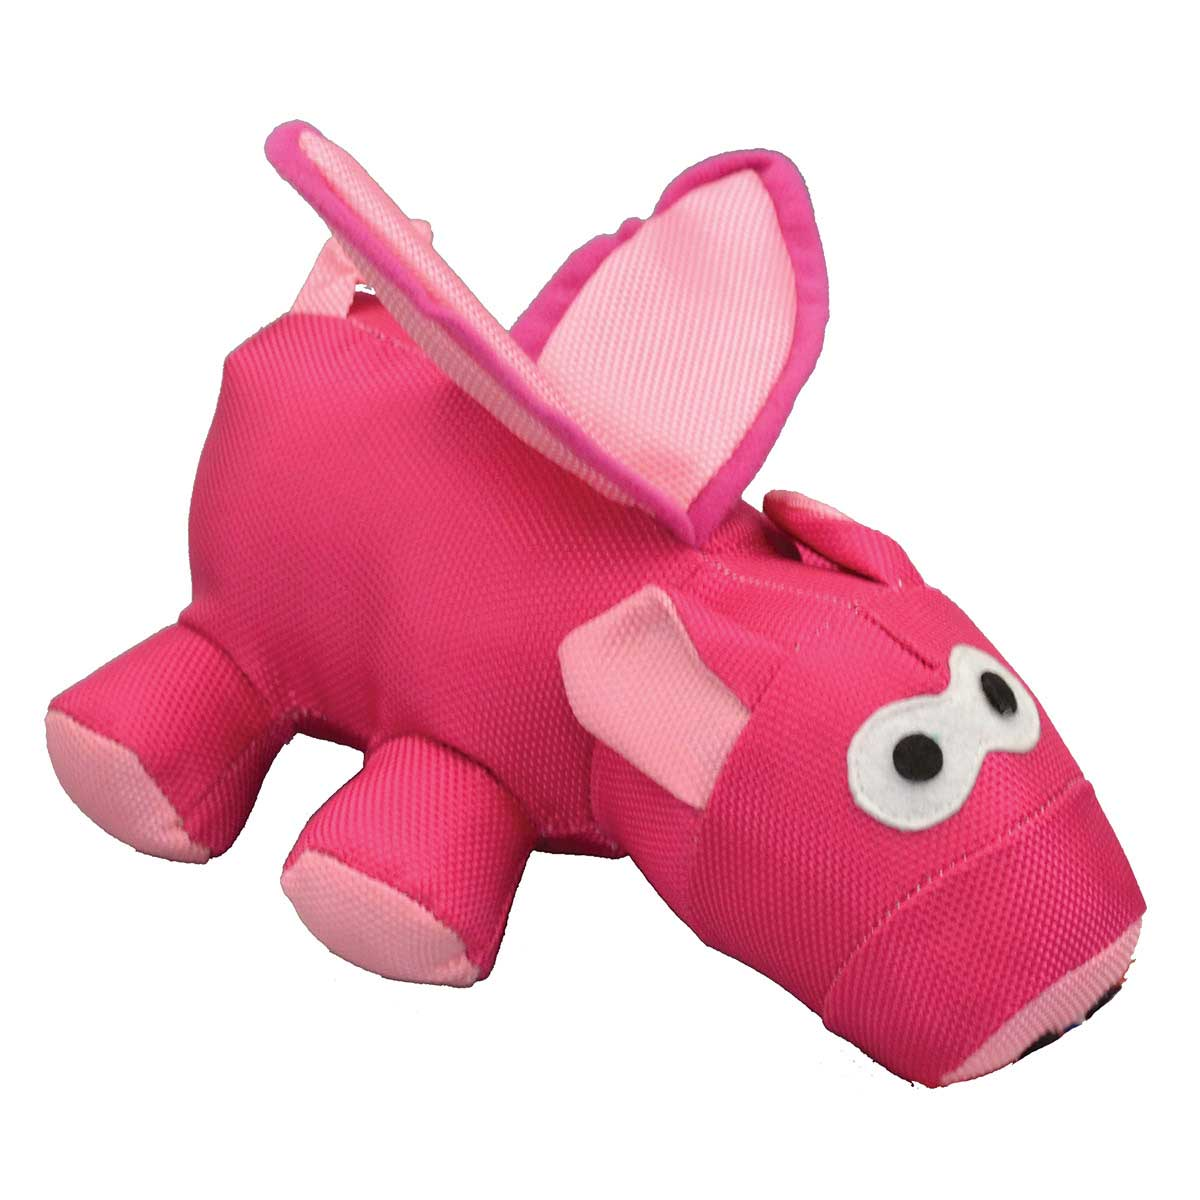 Slinger Flying Pig Stuffed Dog Toy - 8.5 inch